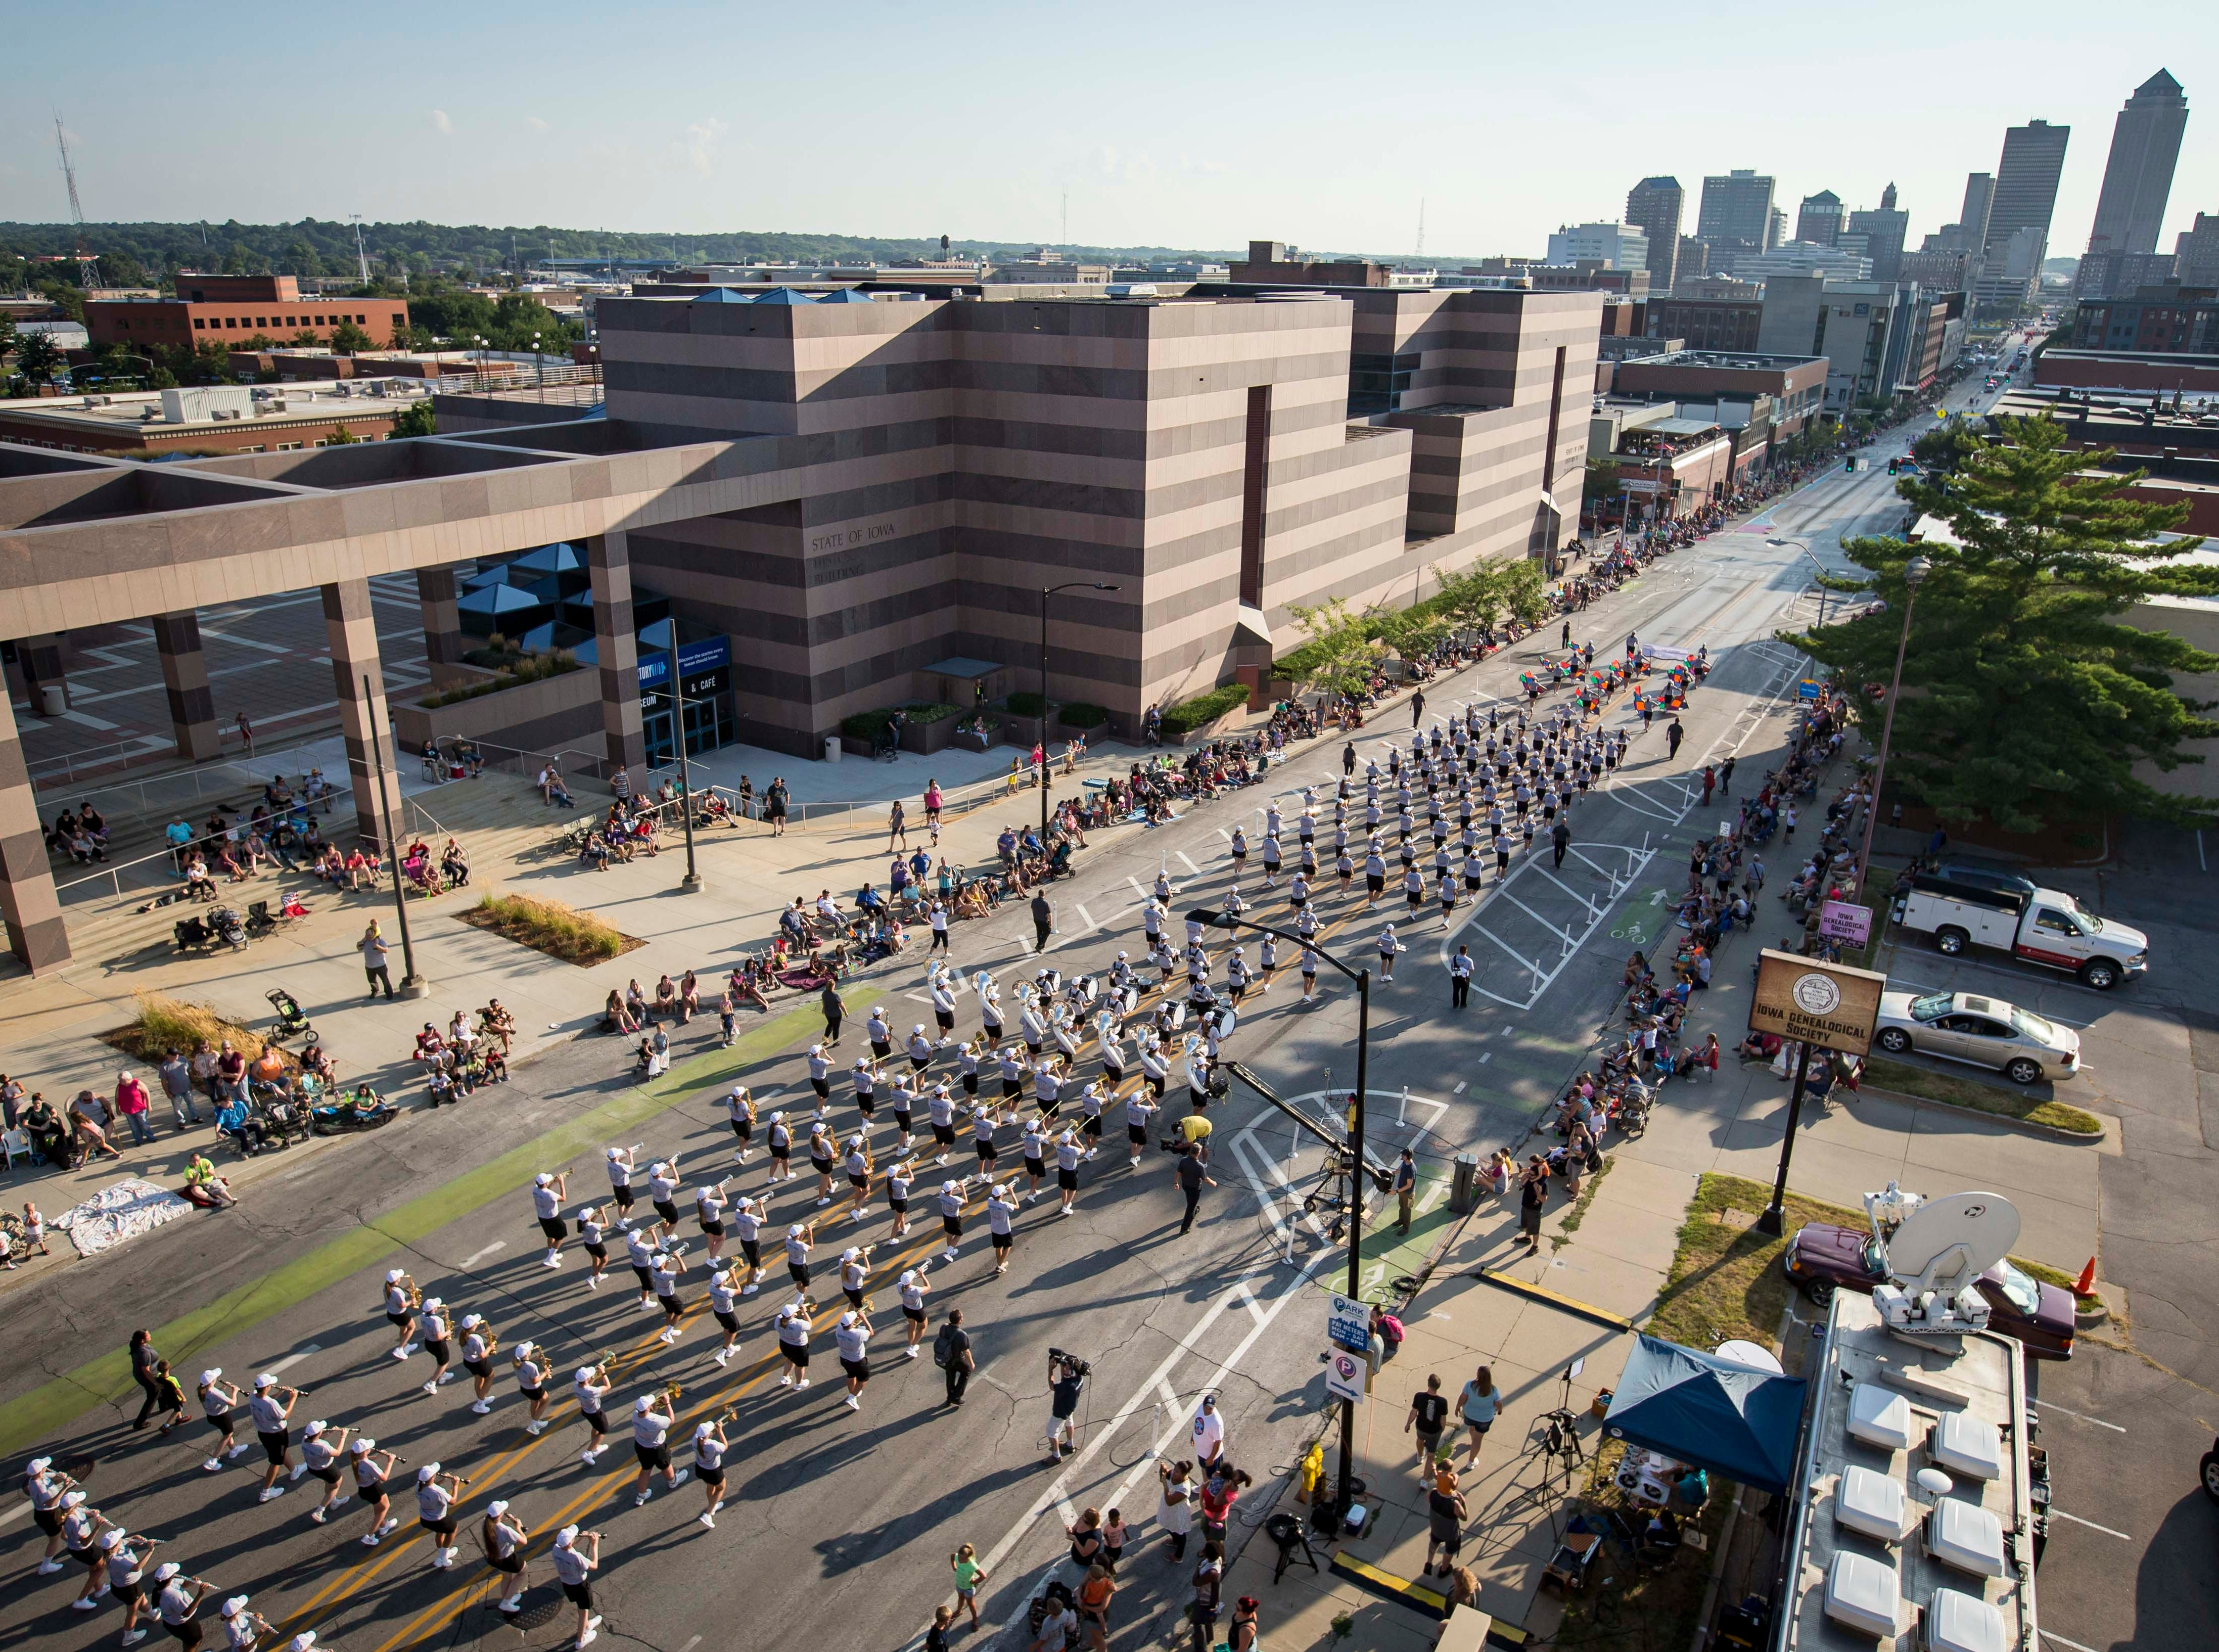 Members of the Southwest Iowa Honor Marching Band march during the 2018 Iowa State Fair parade from the Statehouse to downtown Des Moines Wednesday, Aug. 8, 2018. The Iowa State Fair runs from Aug. 9Ð19.